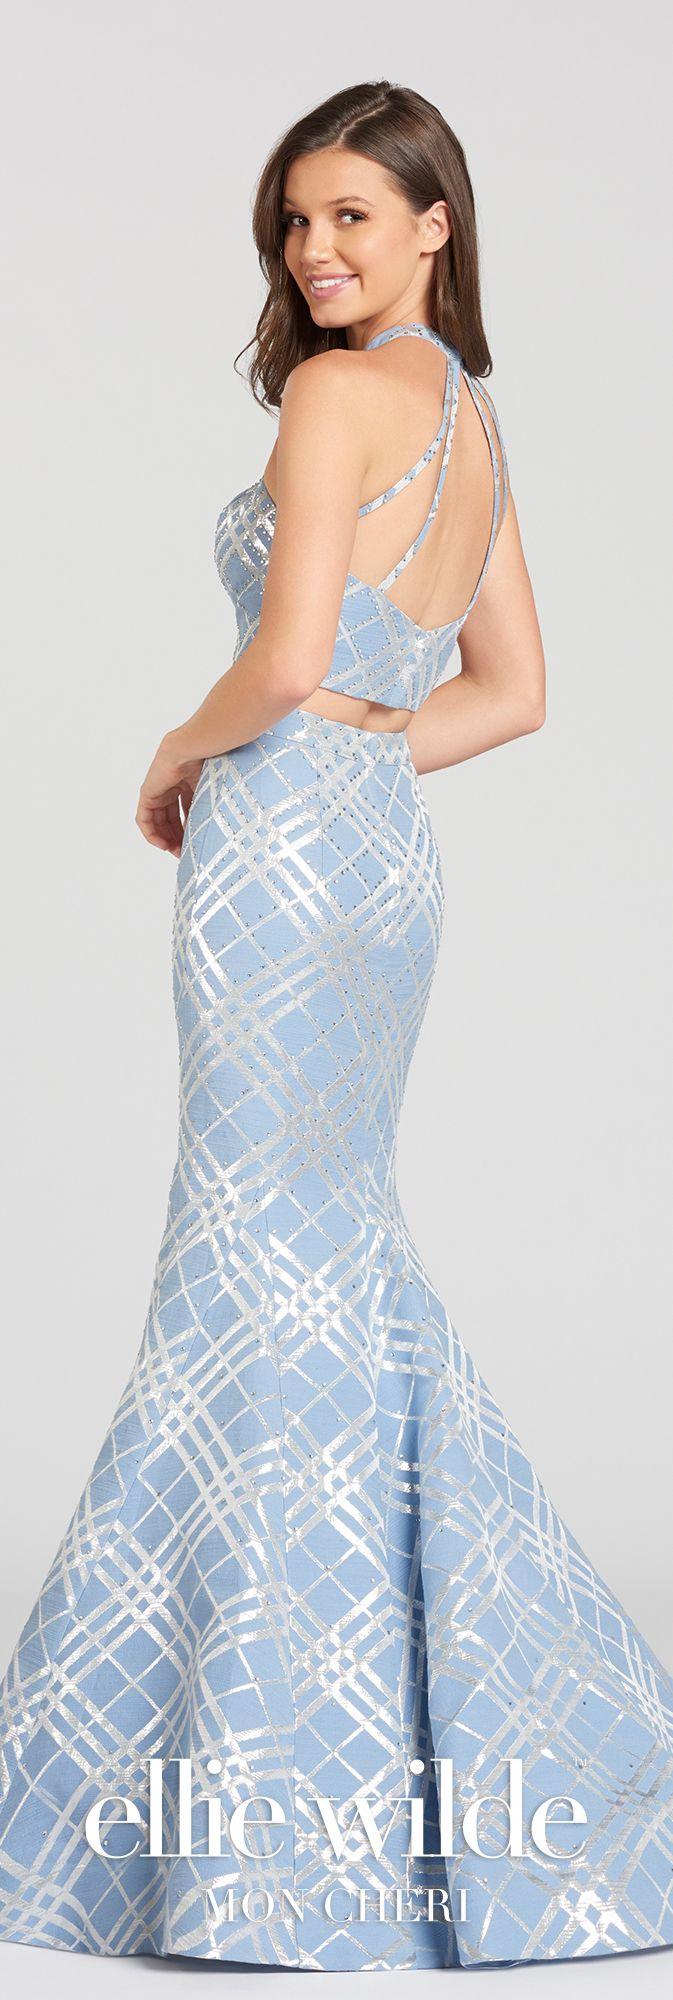 Two-piece sleeveless jacquard with heat set stones and plaid printed trumpet dress with jewel halter neckline, a cropped bodice, and a high-waisted skirt.